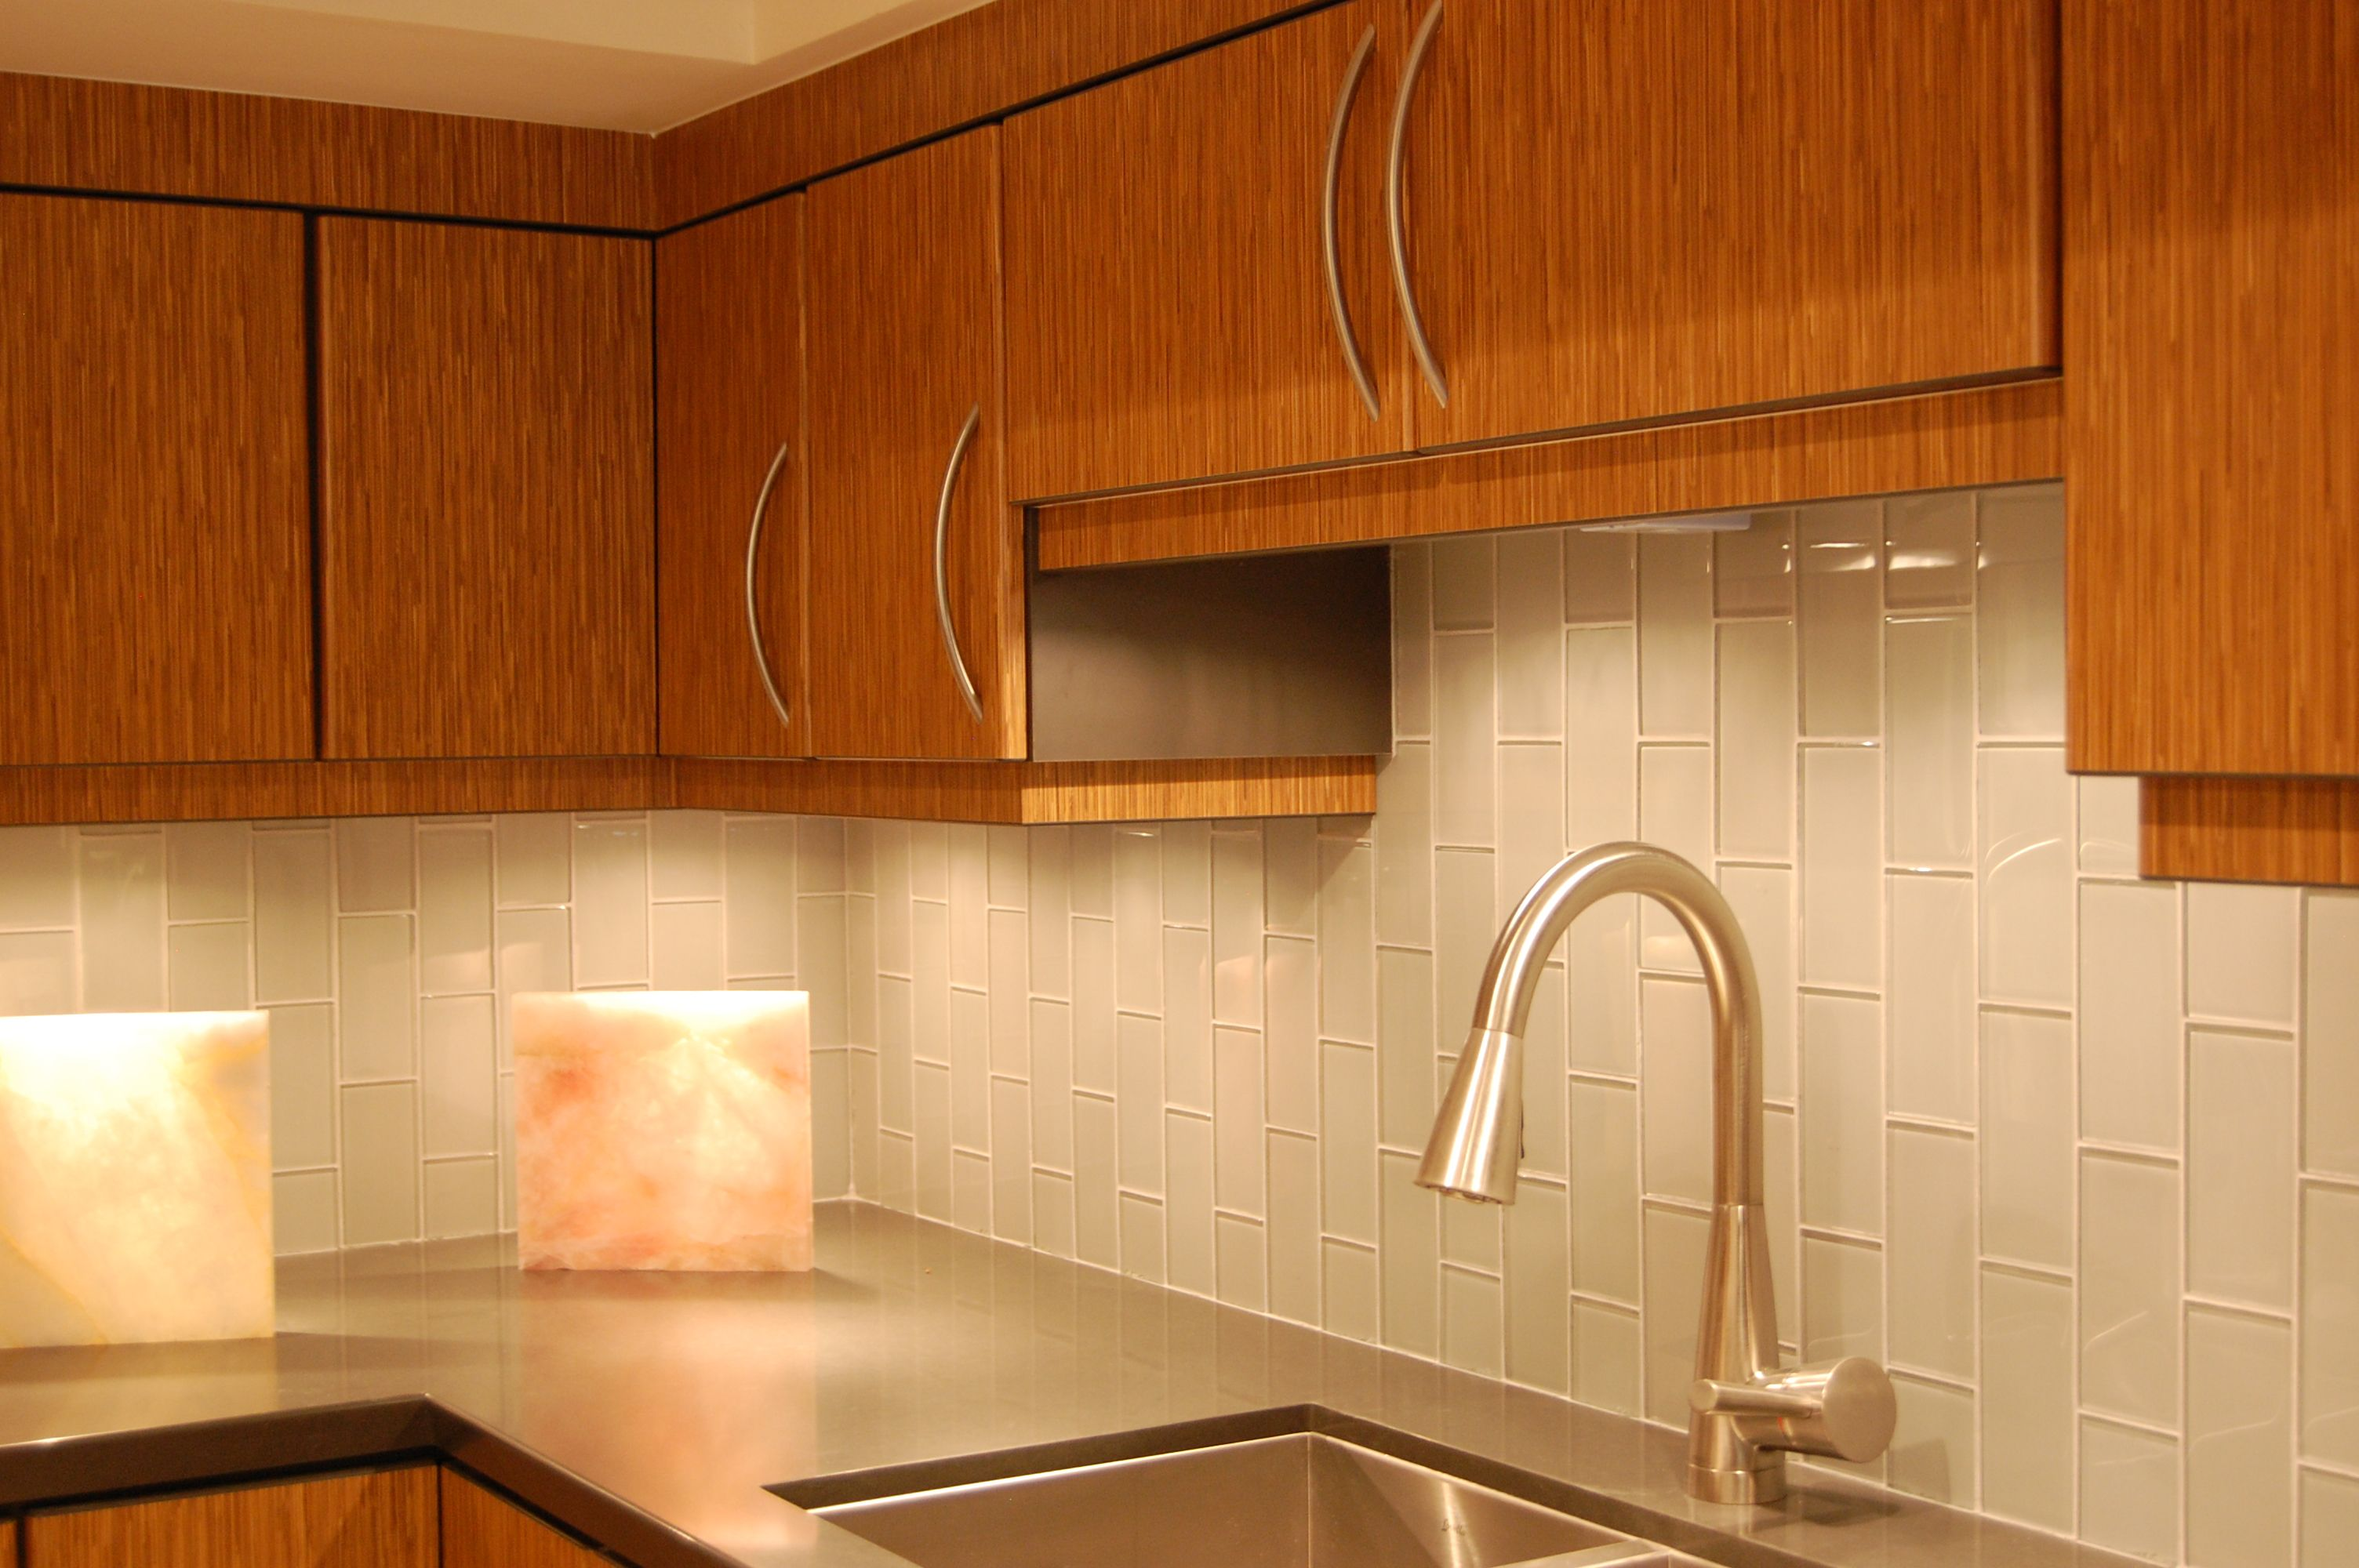 Kitchen Backsplash Glass On Pinterest Kitchen Backsplash Glass Tiles And Kitchen Tiles